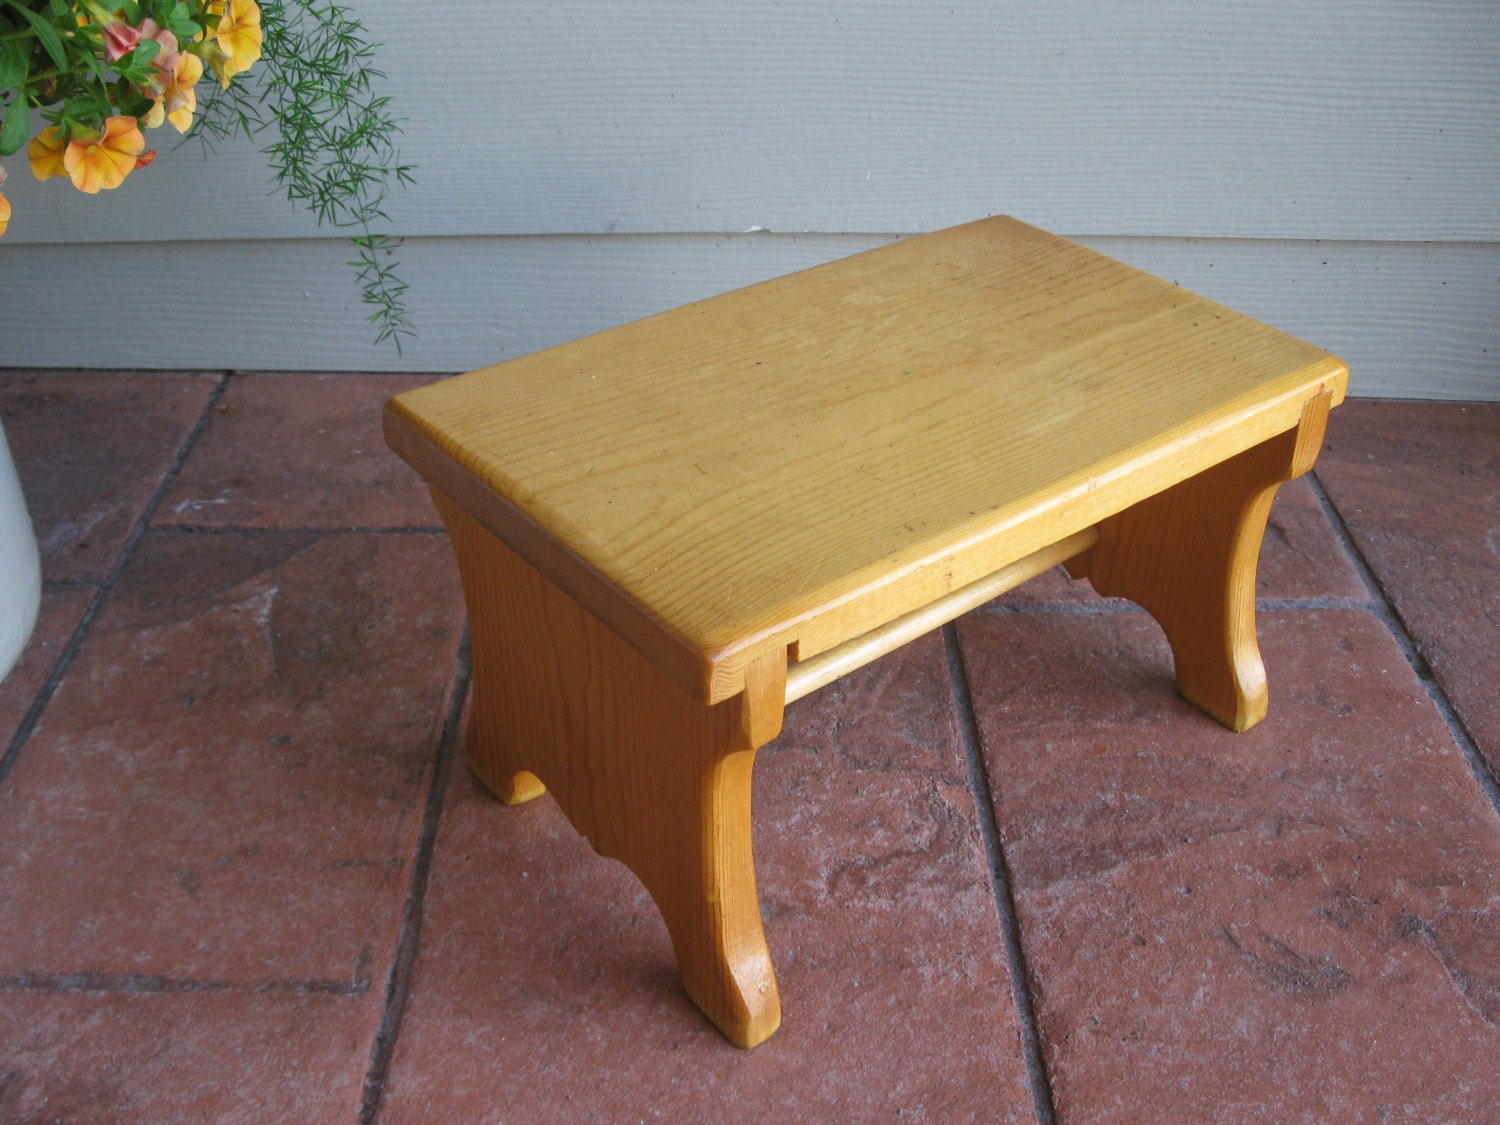 Super Cute Wood Bench Step Stool Handcrafted By Oakiesclaptrap